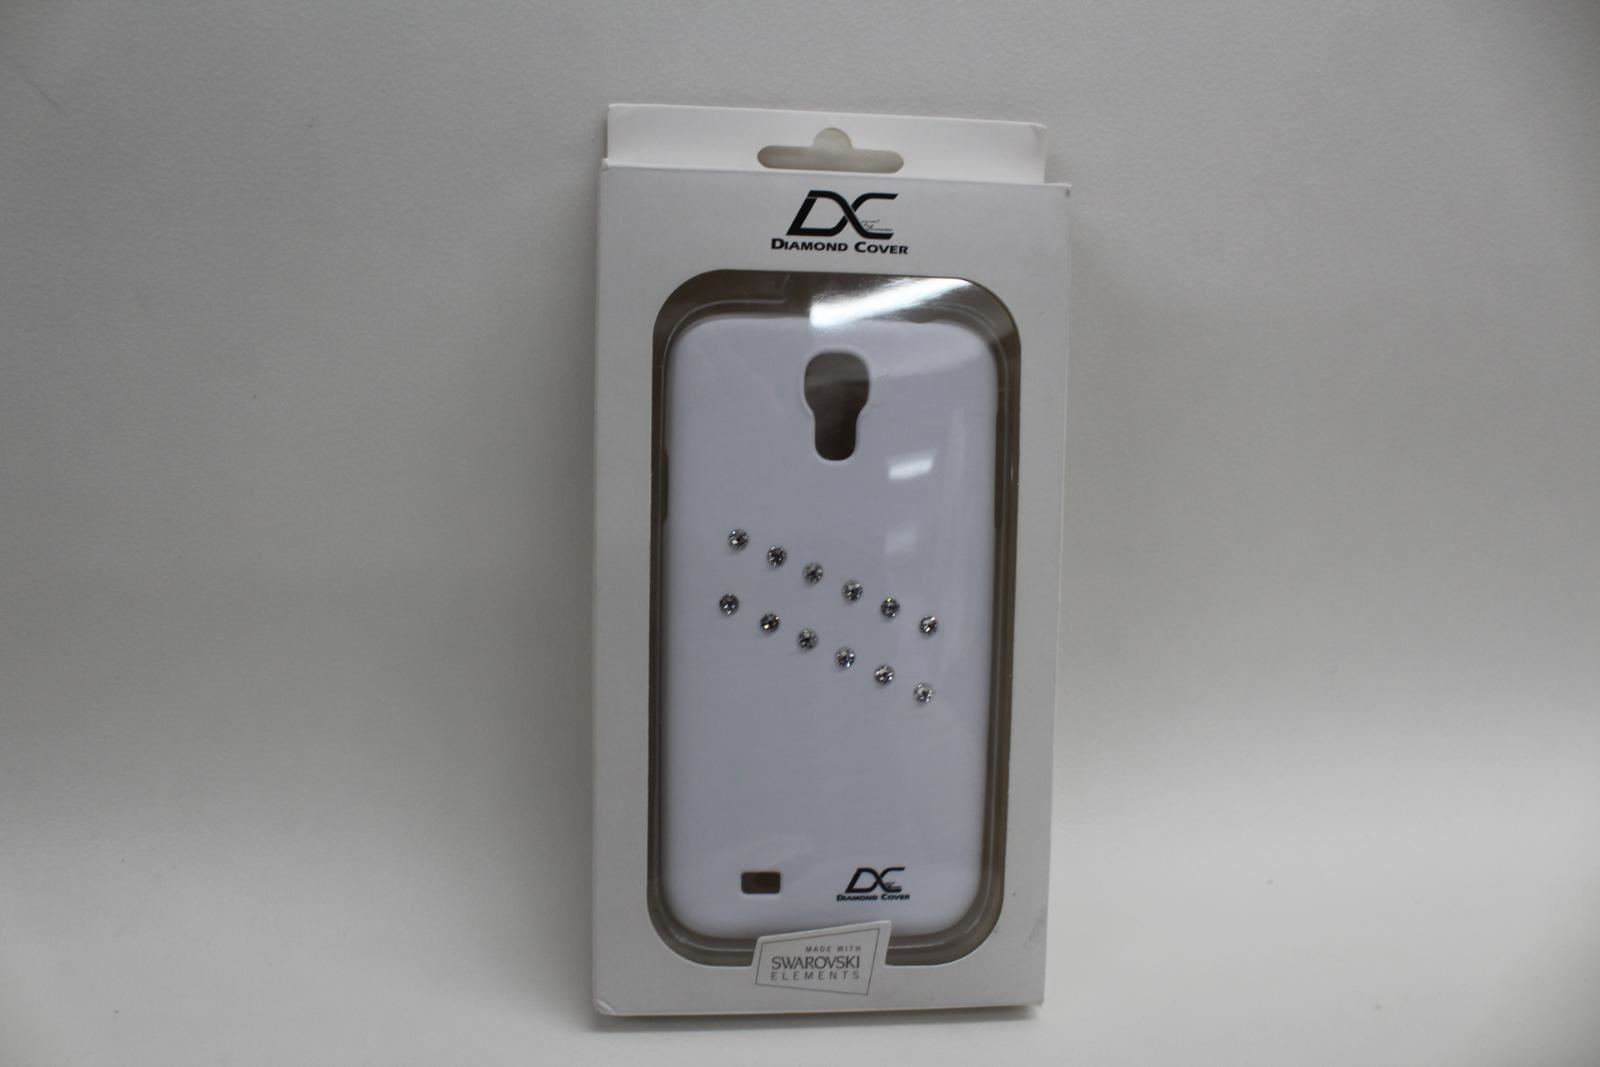 NEW-DIAMOND-COVER-Crystal-Case-For-Samsung-Galaxy-Apple-Iphone-Htc-Flash-White